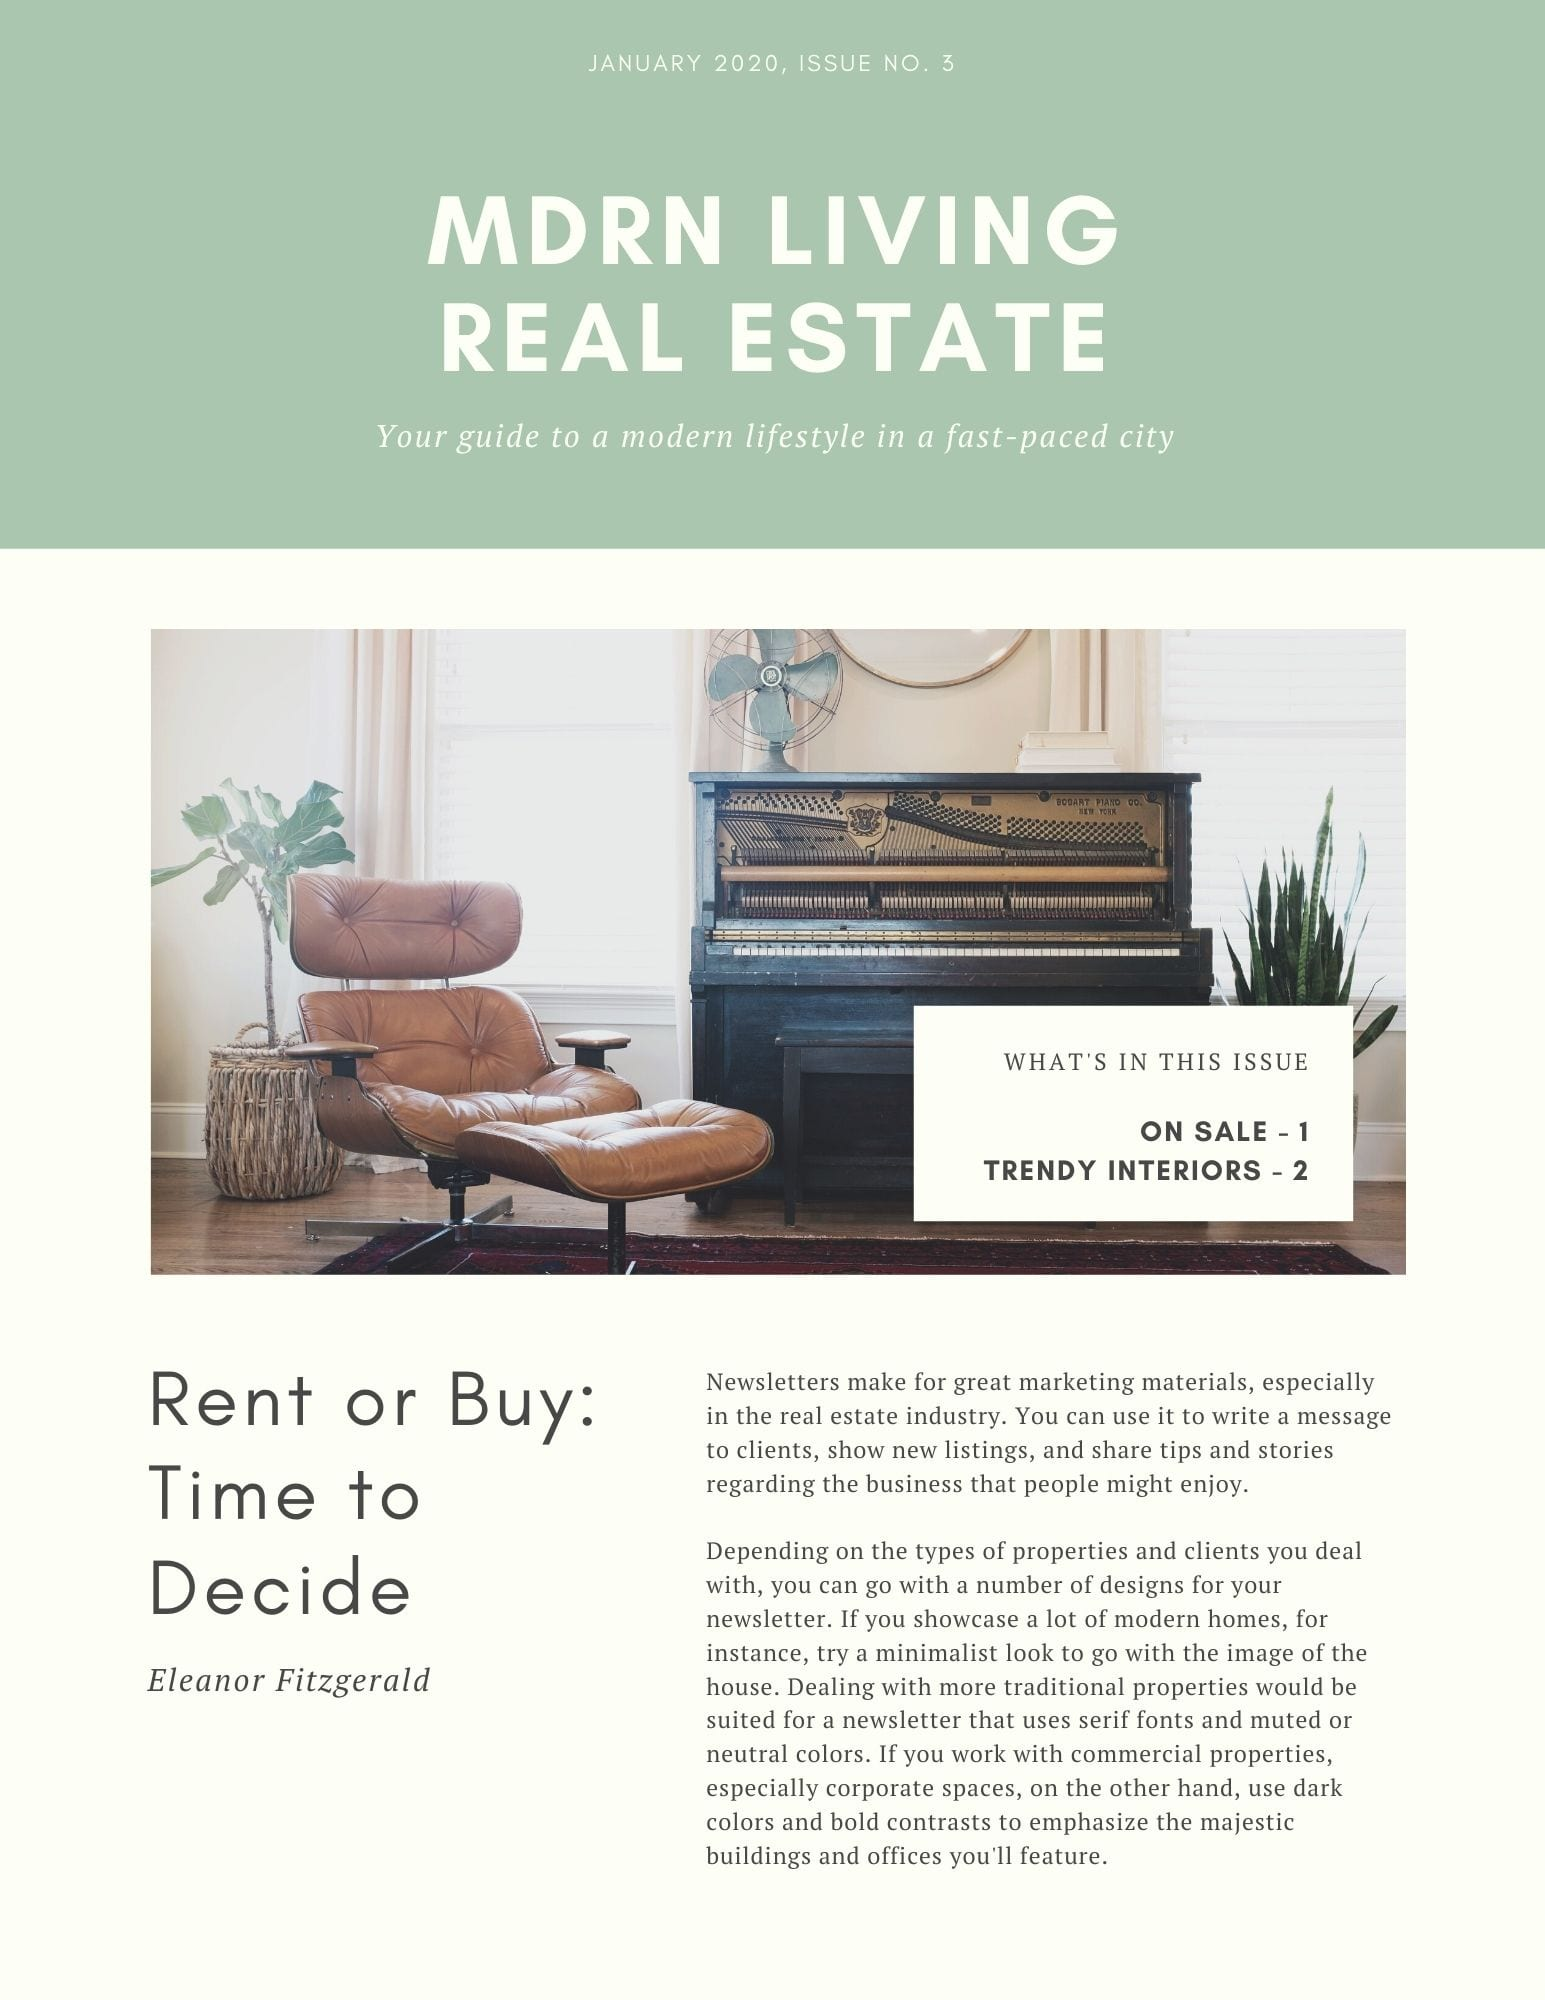 Canva has a library of real estate newsletter templates that can be edited and printed directly from Canva. Choose whether you want to print them one or two-sided, standard or premium paper, and the number of copies.